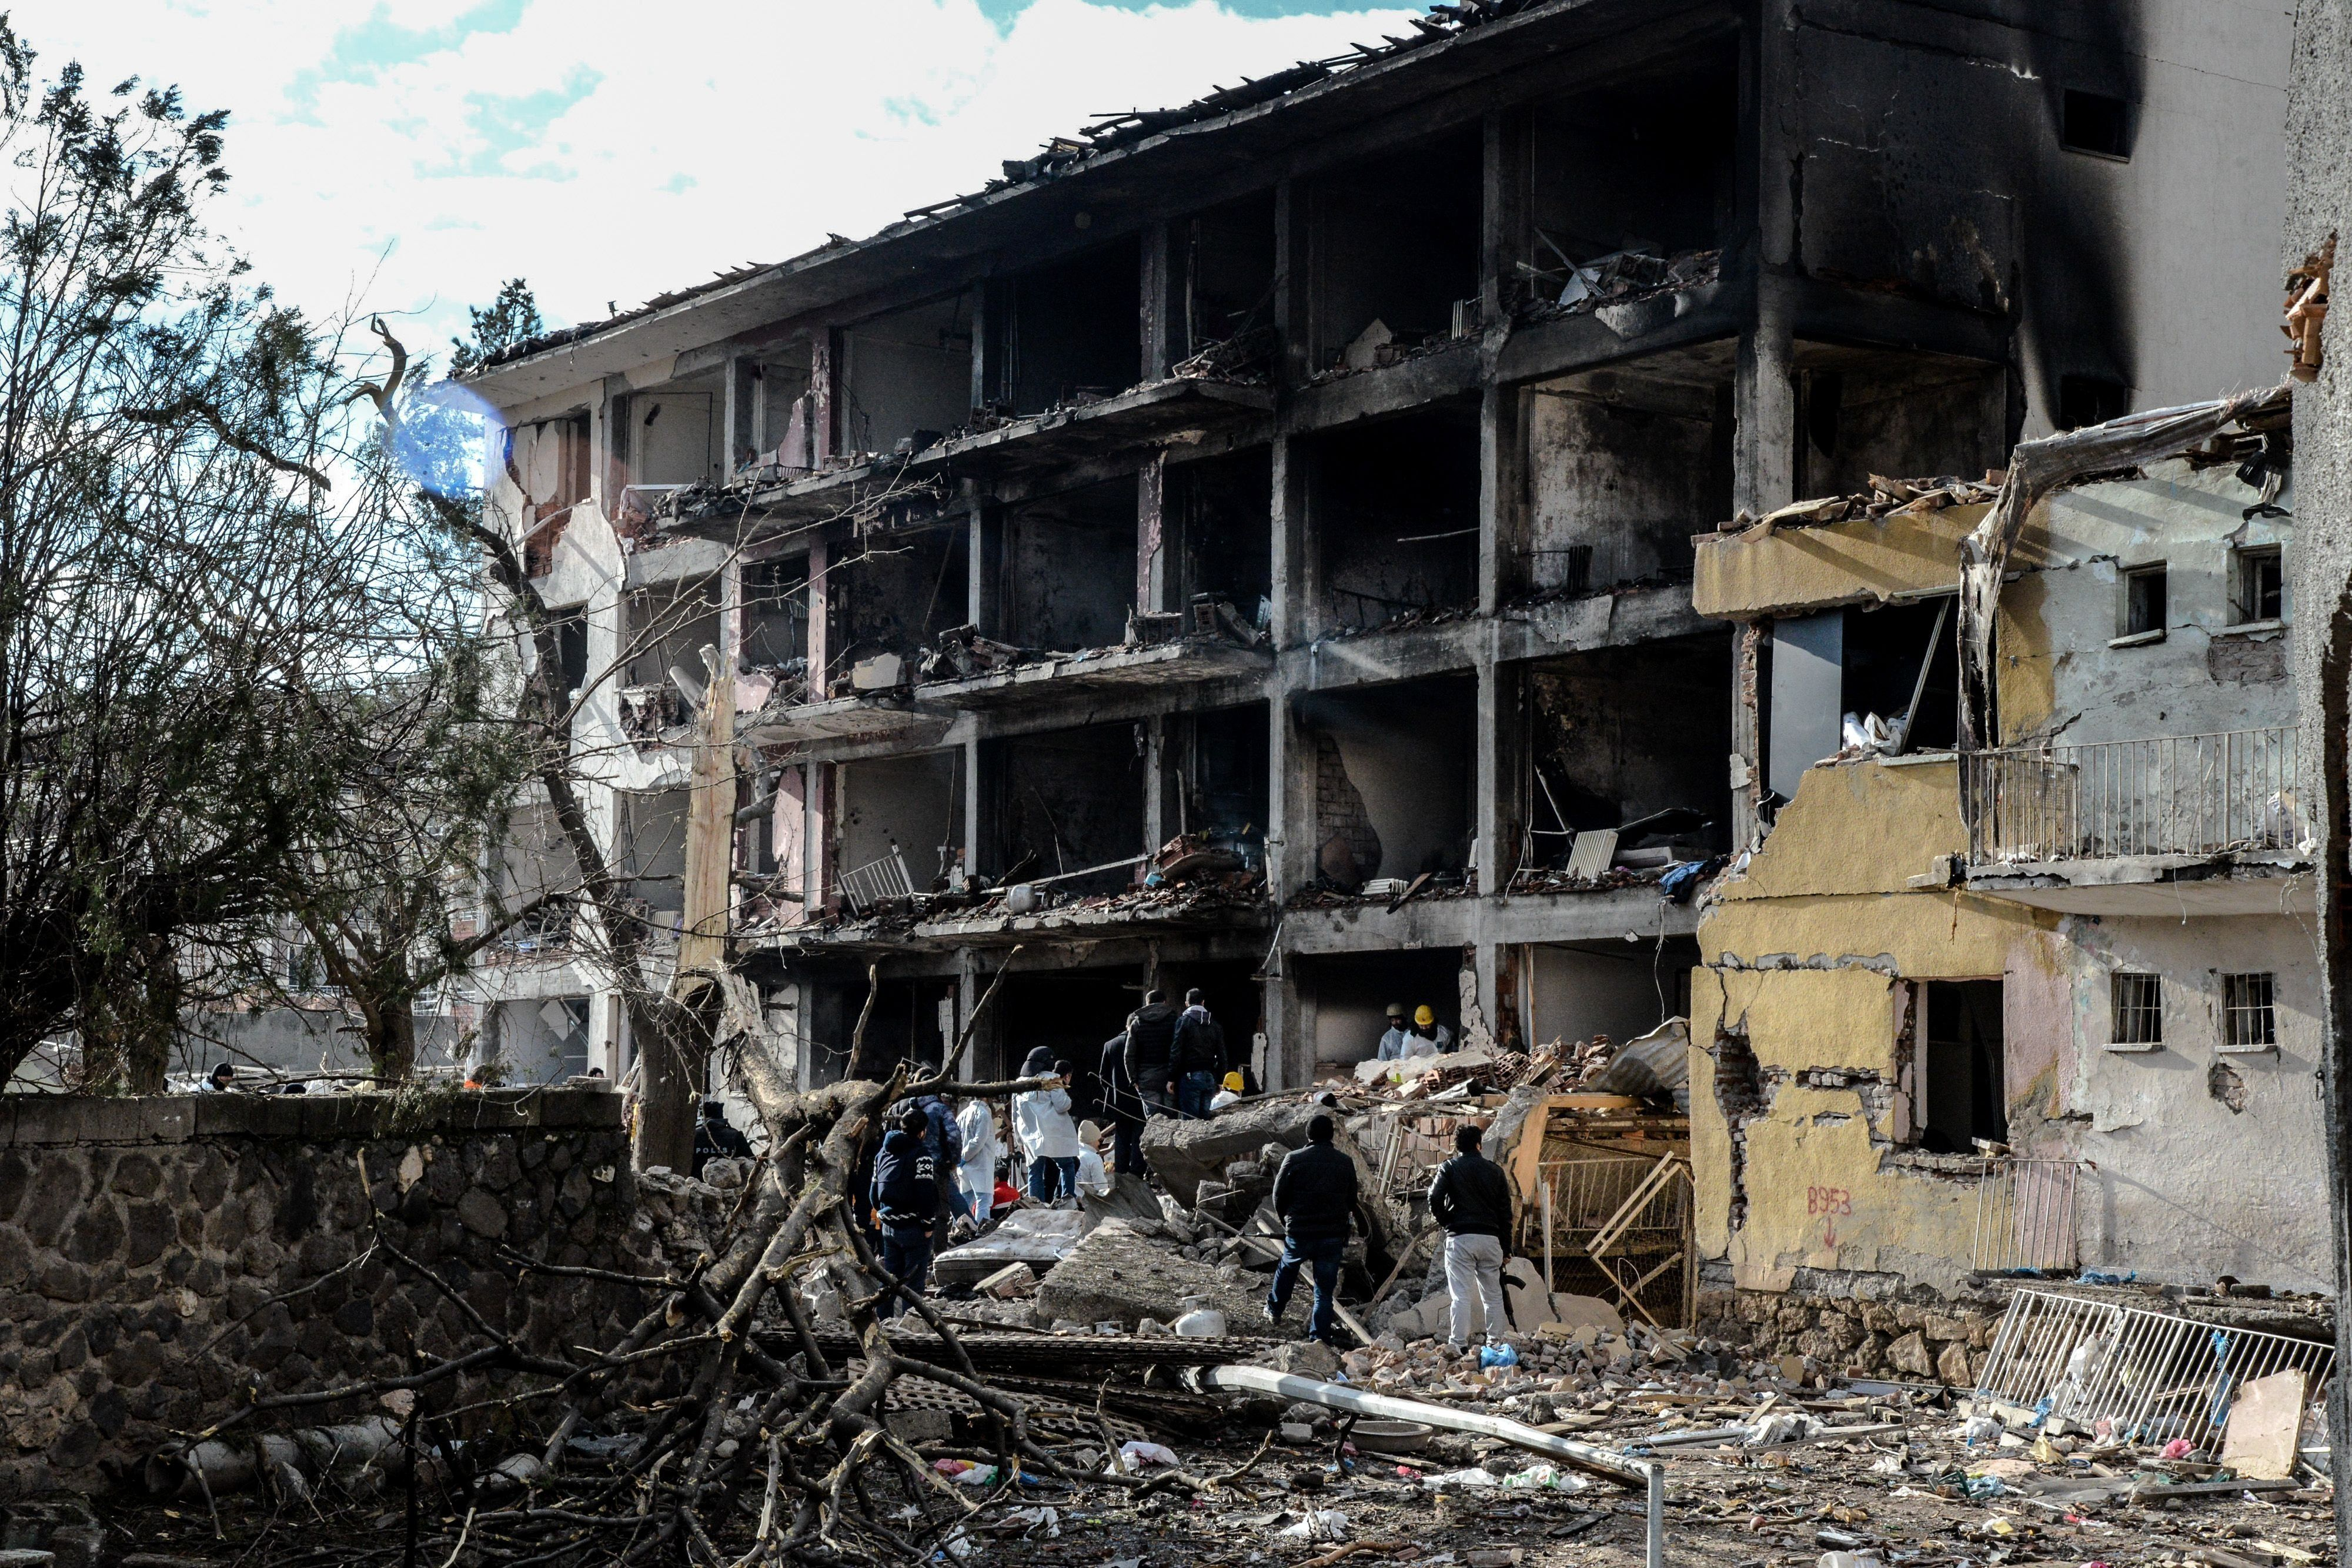 Six people died and dozenswere wounded in a bomb attack blamed on Kurdish rebels that ripped through a police station a